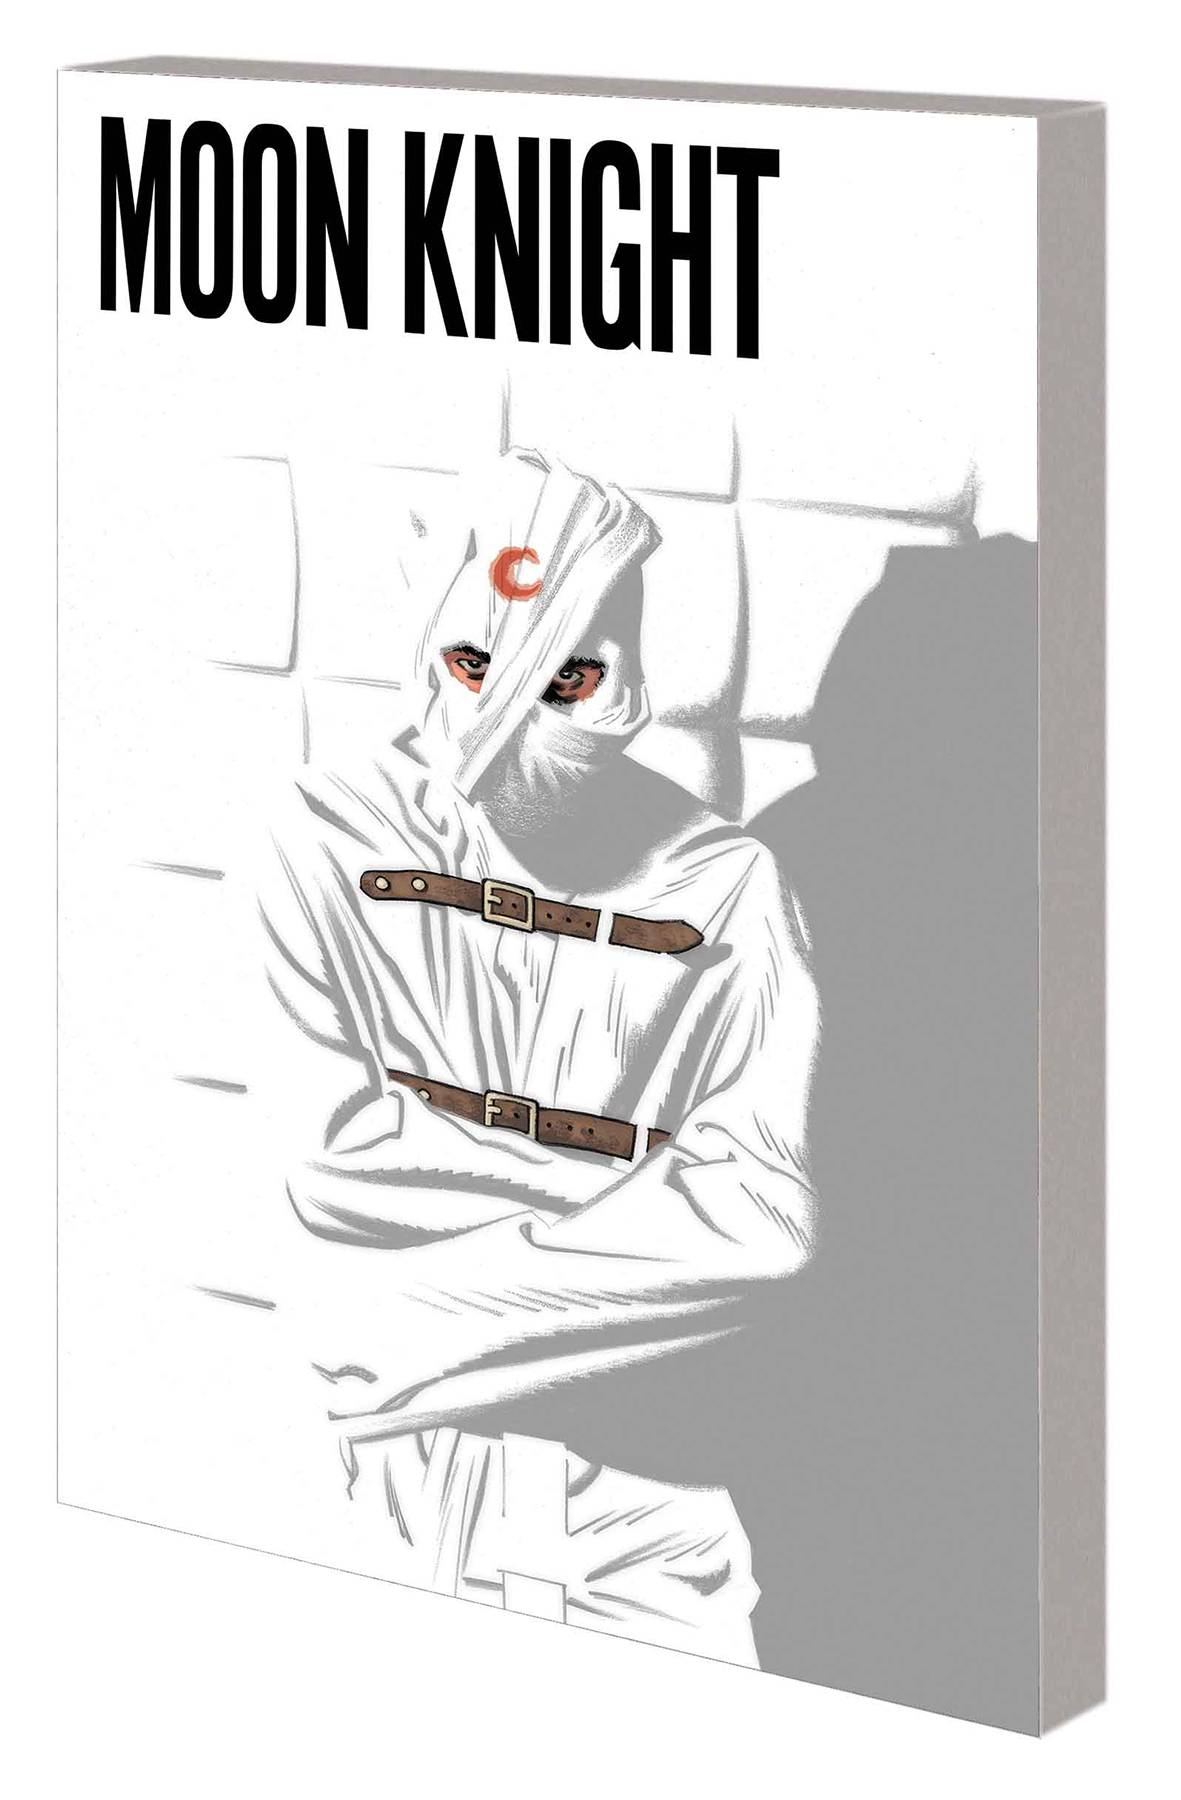 Moon Knight TP Vol 1 - Trish's PickDiverging from the original Moon Knight origin, this story written by Jeff Lemire (Underwater Welder, Descender, Animal Man) spins an entirely new beginning for Marc Spector. The reader first joins Marc in a mental hospital as he struggles to understand his dissociative personality disorder and grasp who he truly is. Hounded by abusive asylum attendants and a skeptical doctor but convinced that one of his personalities is the Moon Knight who fights crime by night, he's consistently told that he has actually been in this asylum for his entire life. The art by Greg Smallwood (Amazing Spider-Man) is what first captured my attention as I've never really been interested in the character before. Not only are there multiple drawing styles depending on Marc's current situation, but the panels themselves are often unconventional and change to convey certain story elements. Because the predominant theme of the story is Egyptian lore, the reader is introduced to many Egyptian gods and creatures that provide unique and stunning visuals from start to finish.